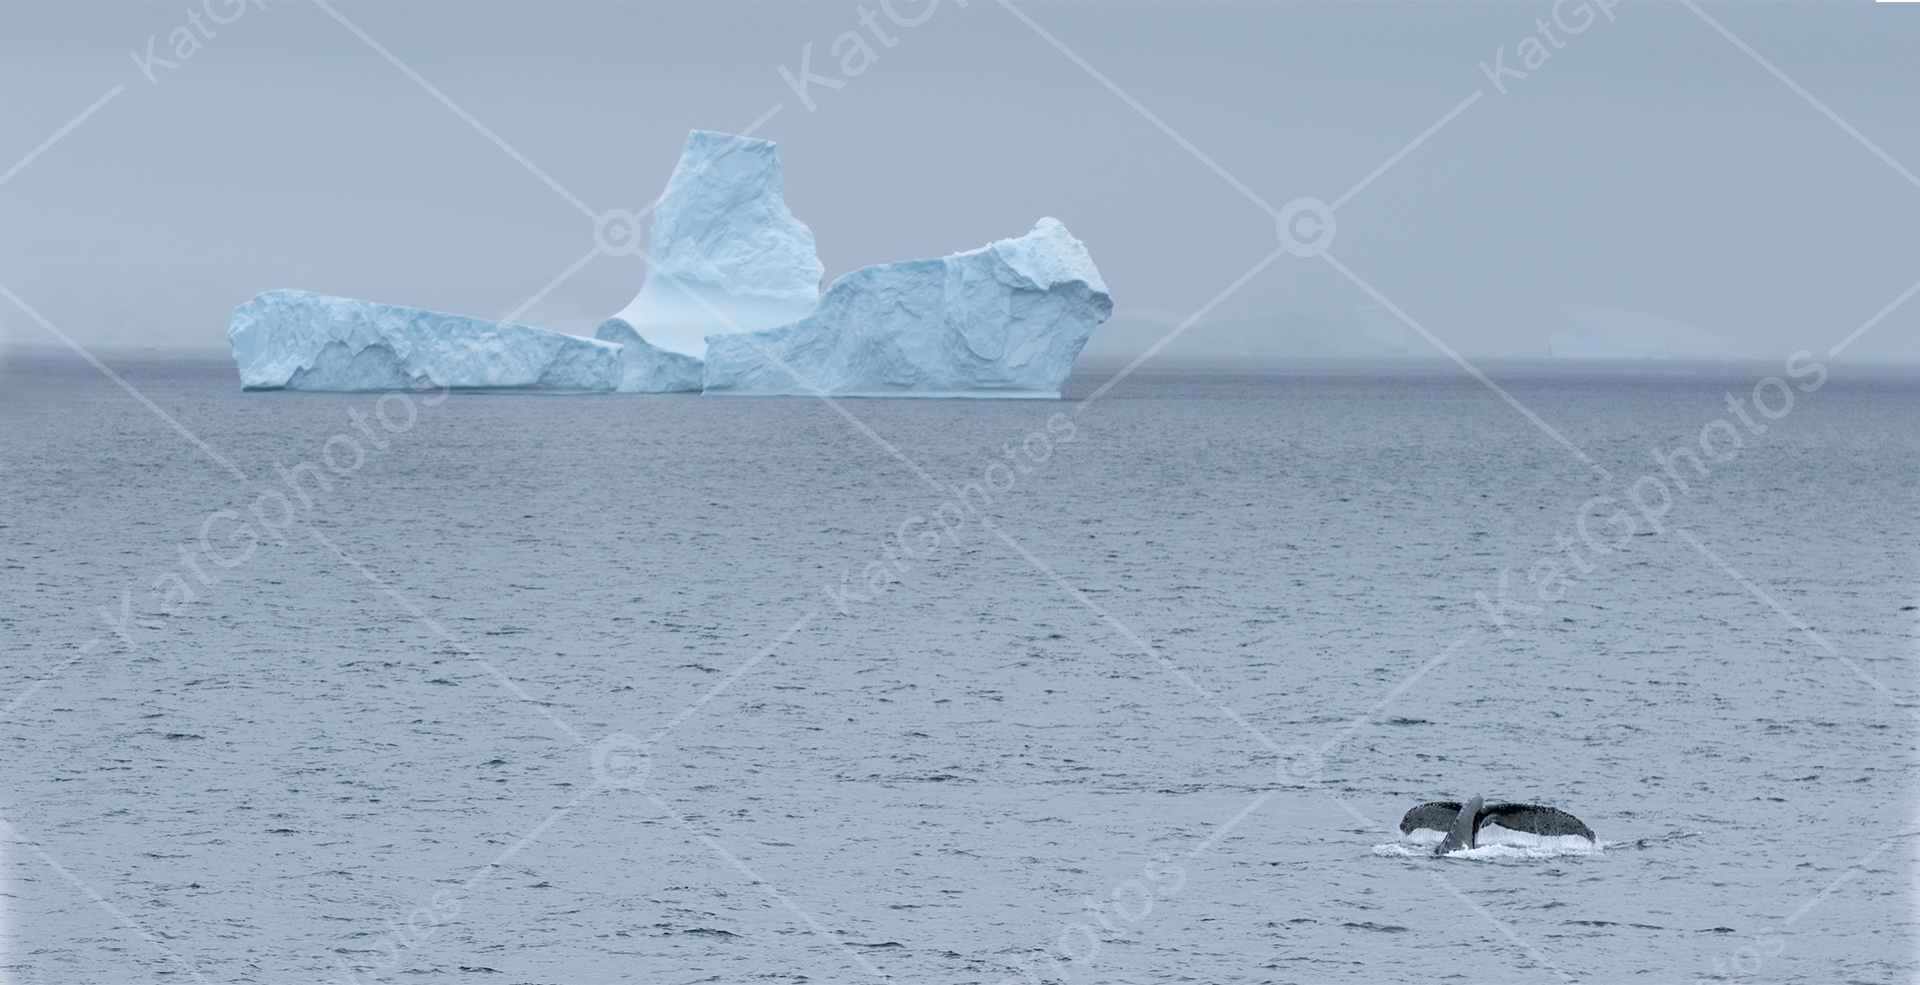 Humpback whale, humpback whales, whale, wild,  lindbladexp, natgeo, perfect, nature,  animal captures, beautiful, ocean, sea, Antarctica